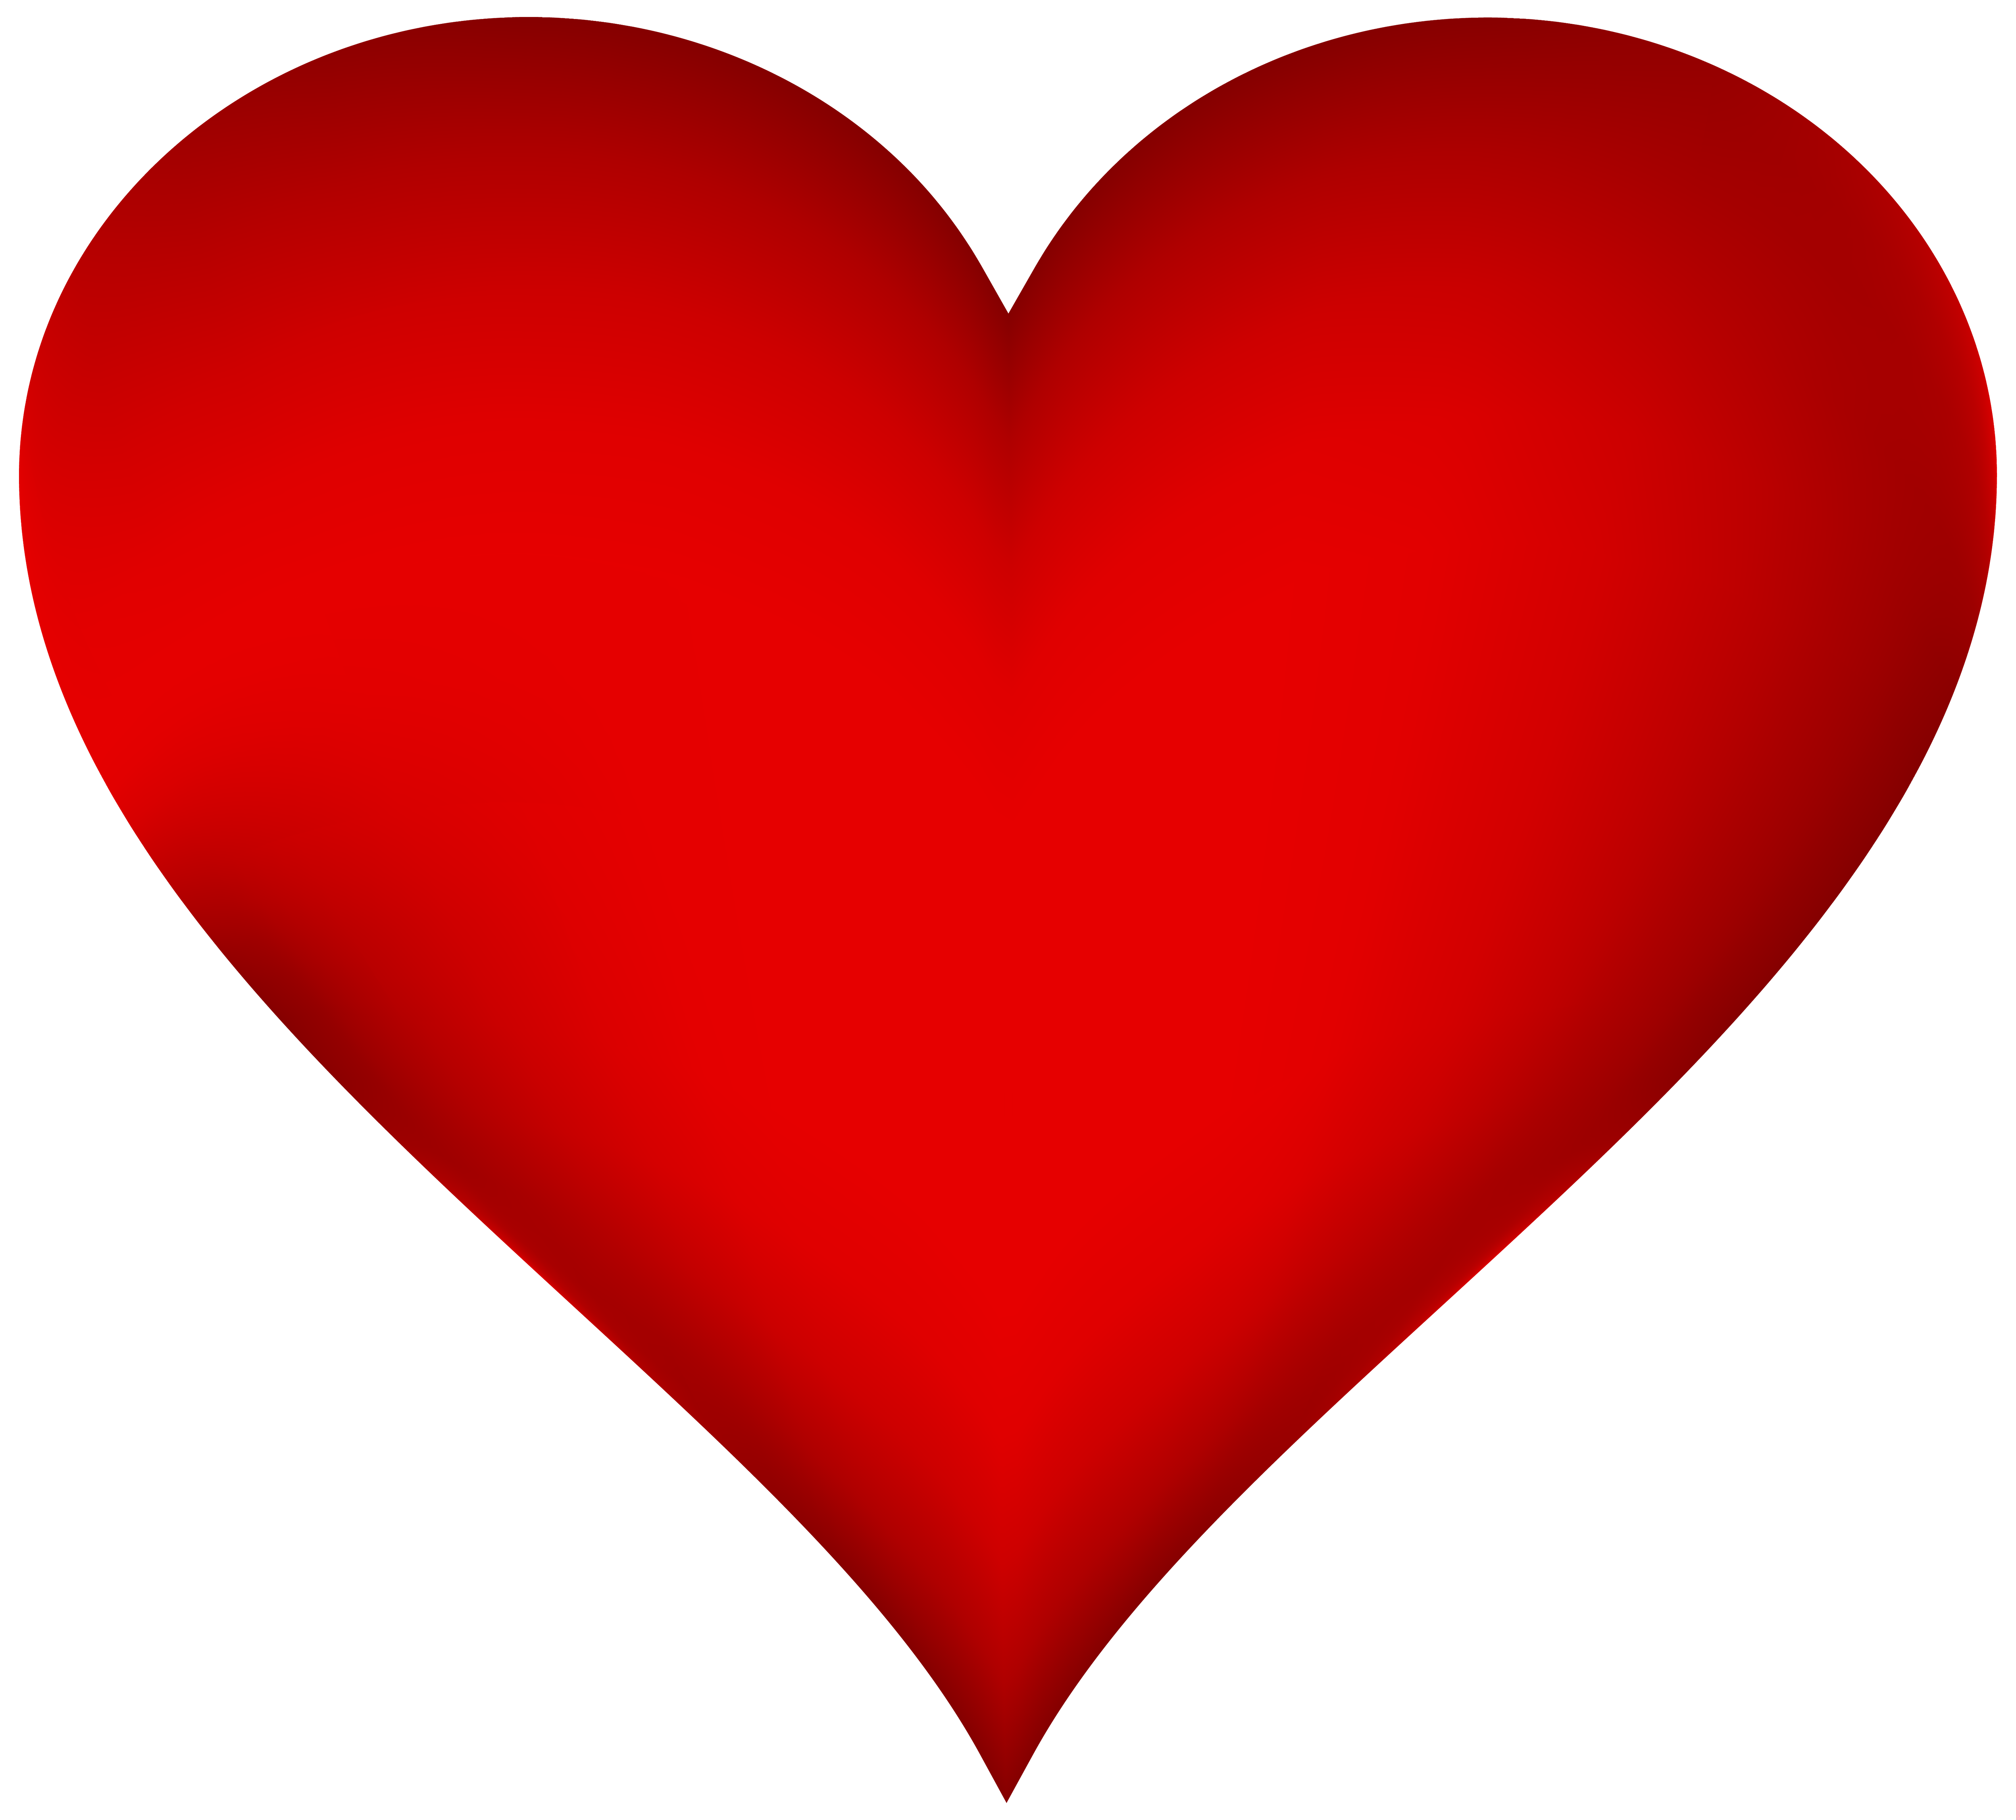 Hearts png. Heart clipart best web